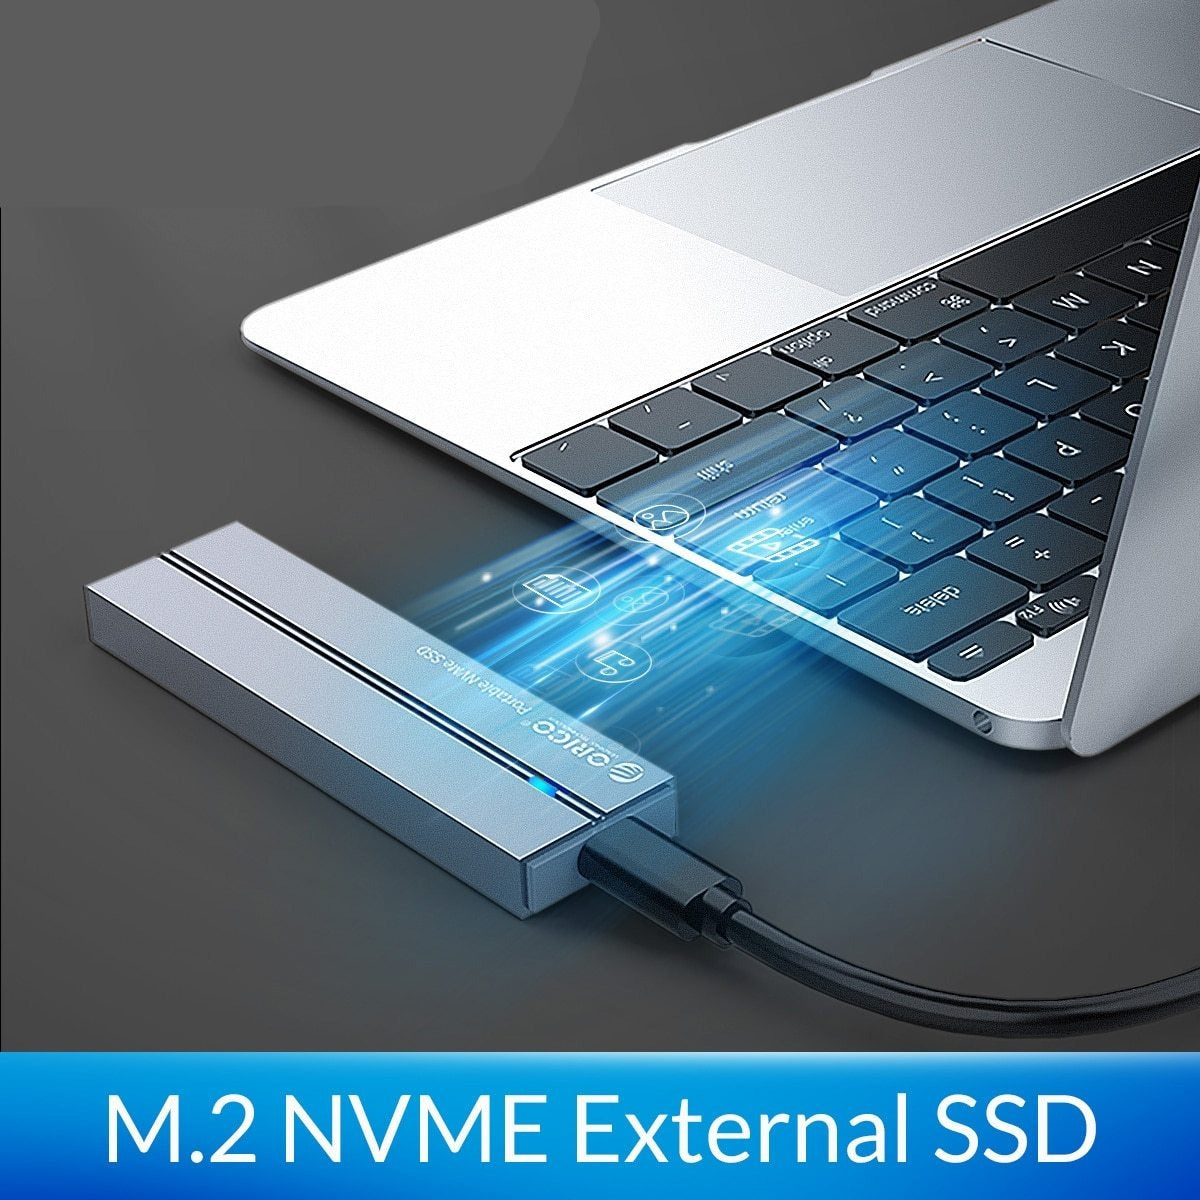 SSD External Solid State Drive with Type C USB 3.1